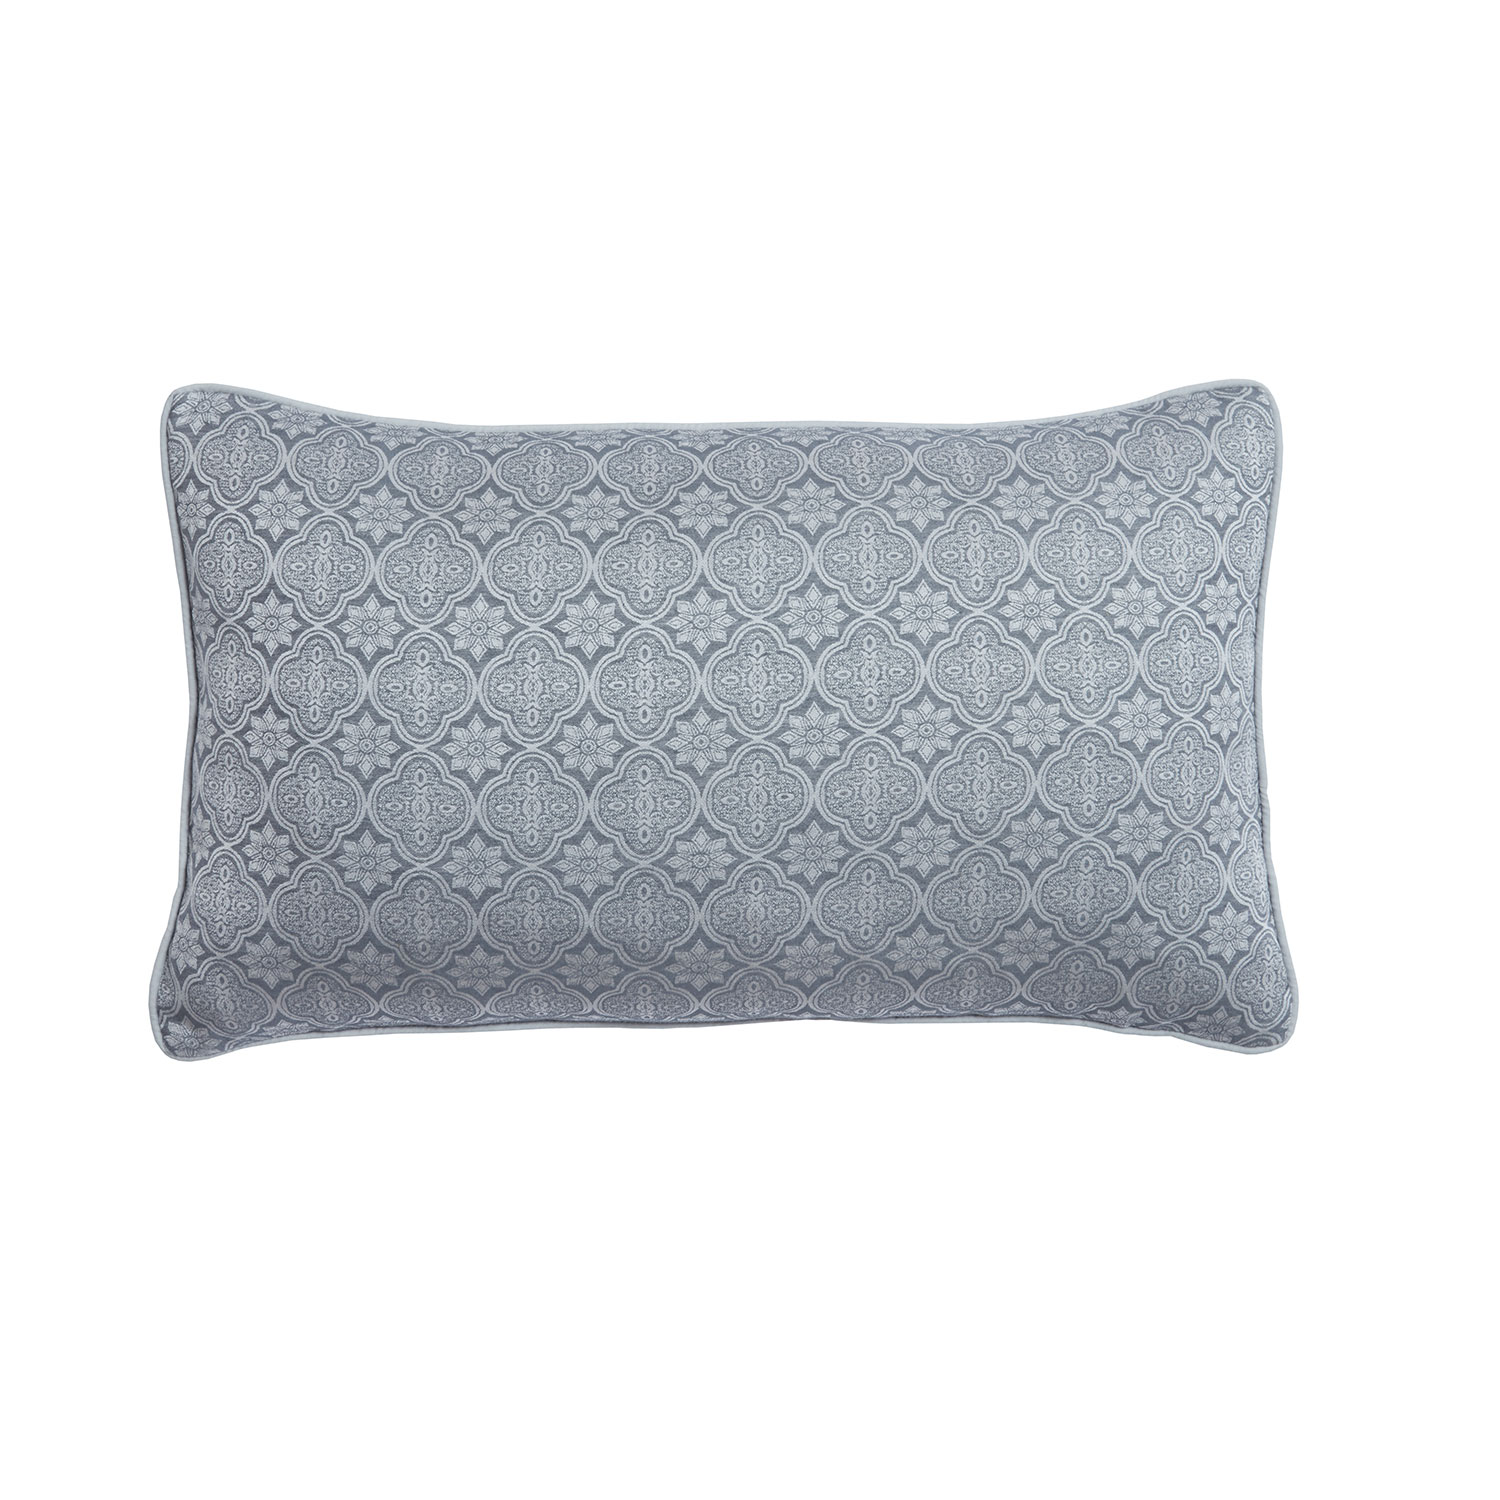 Bargain Taylor Silver Luxury Jacquard Filled Boudoir Cushion Stockists